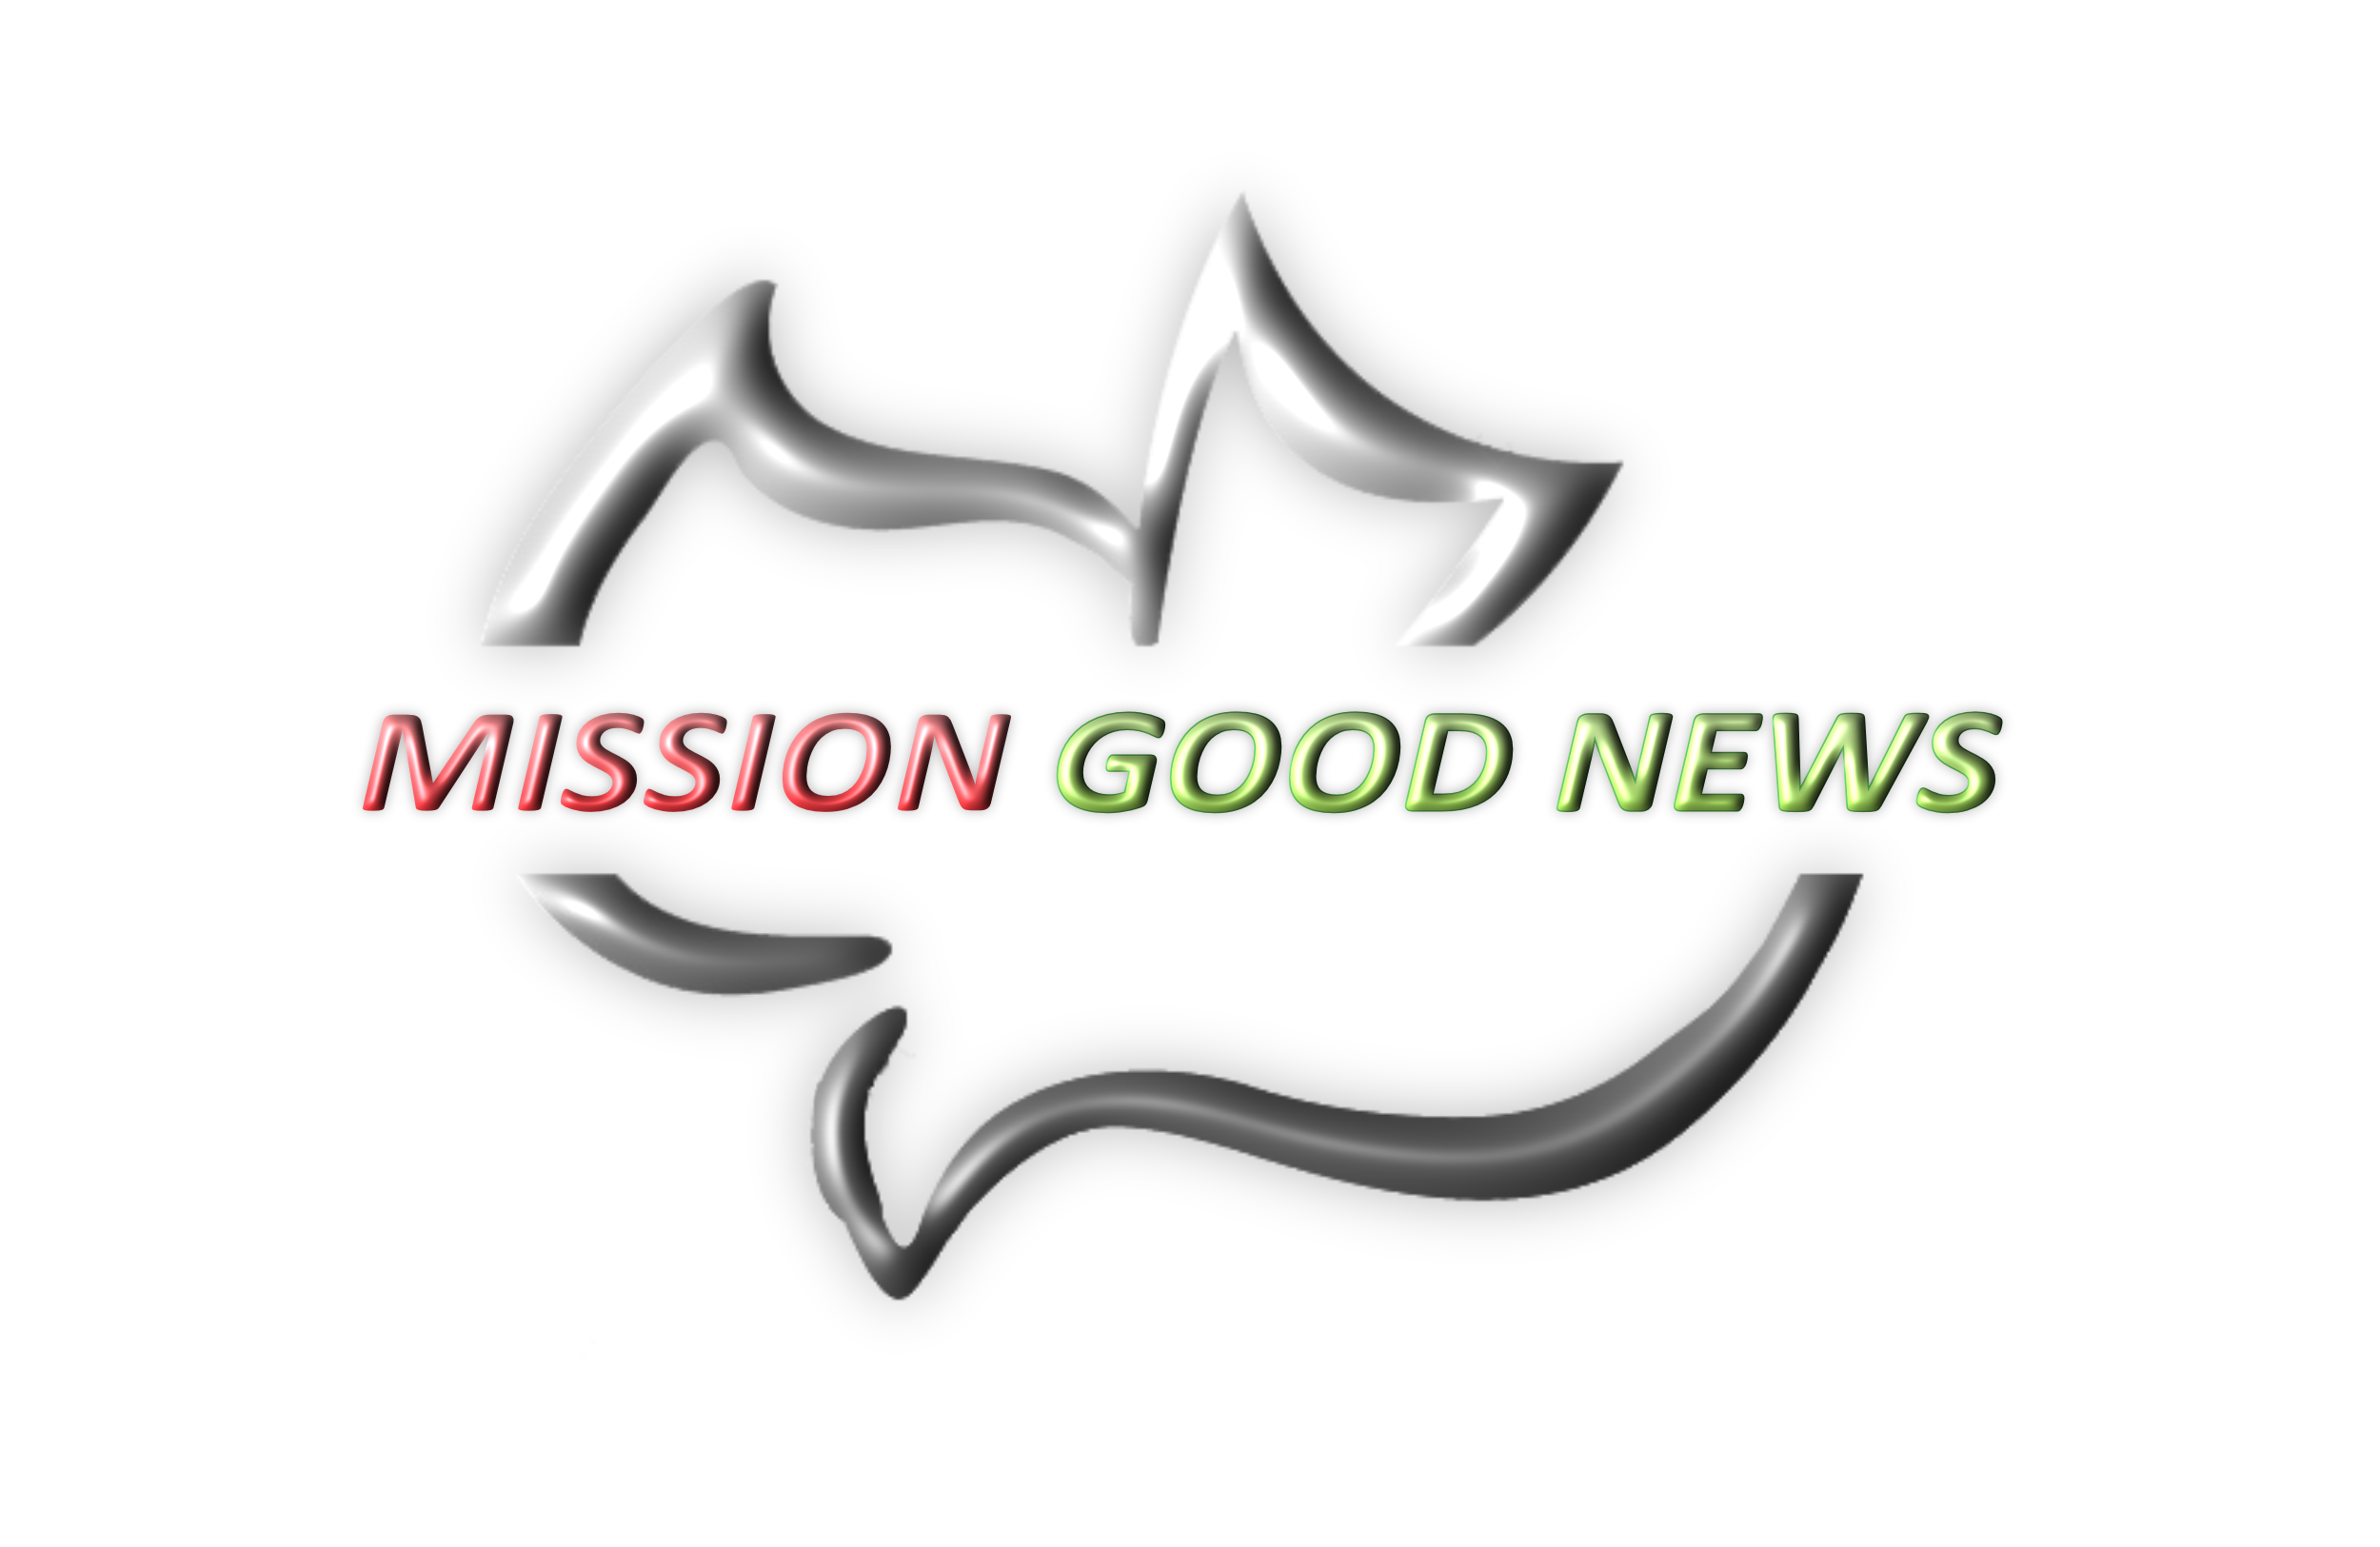 Mission Good News